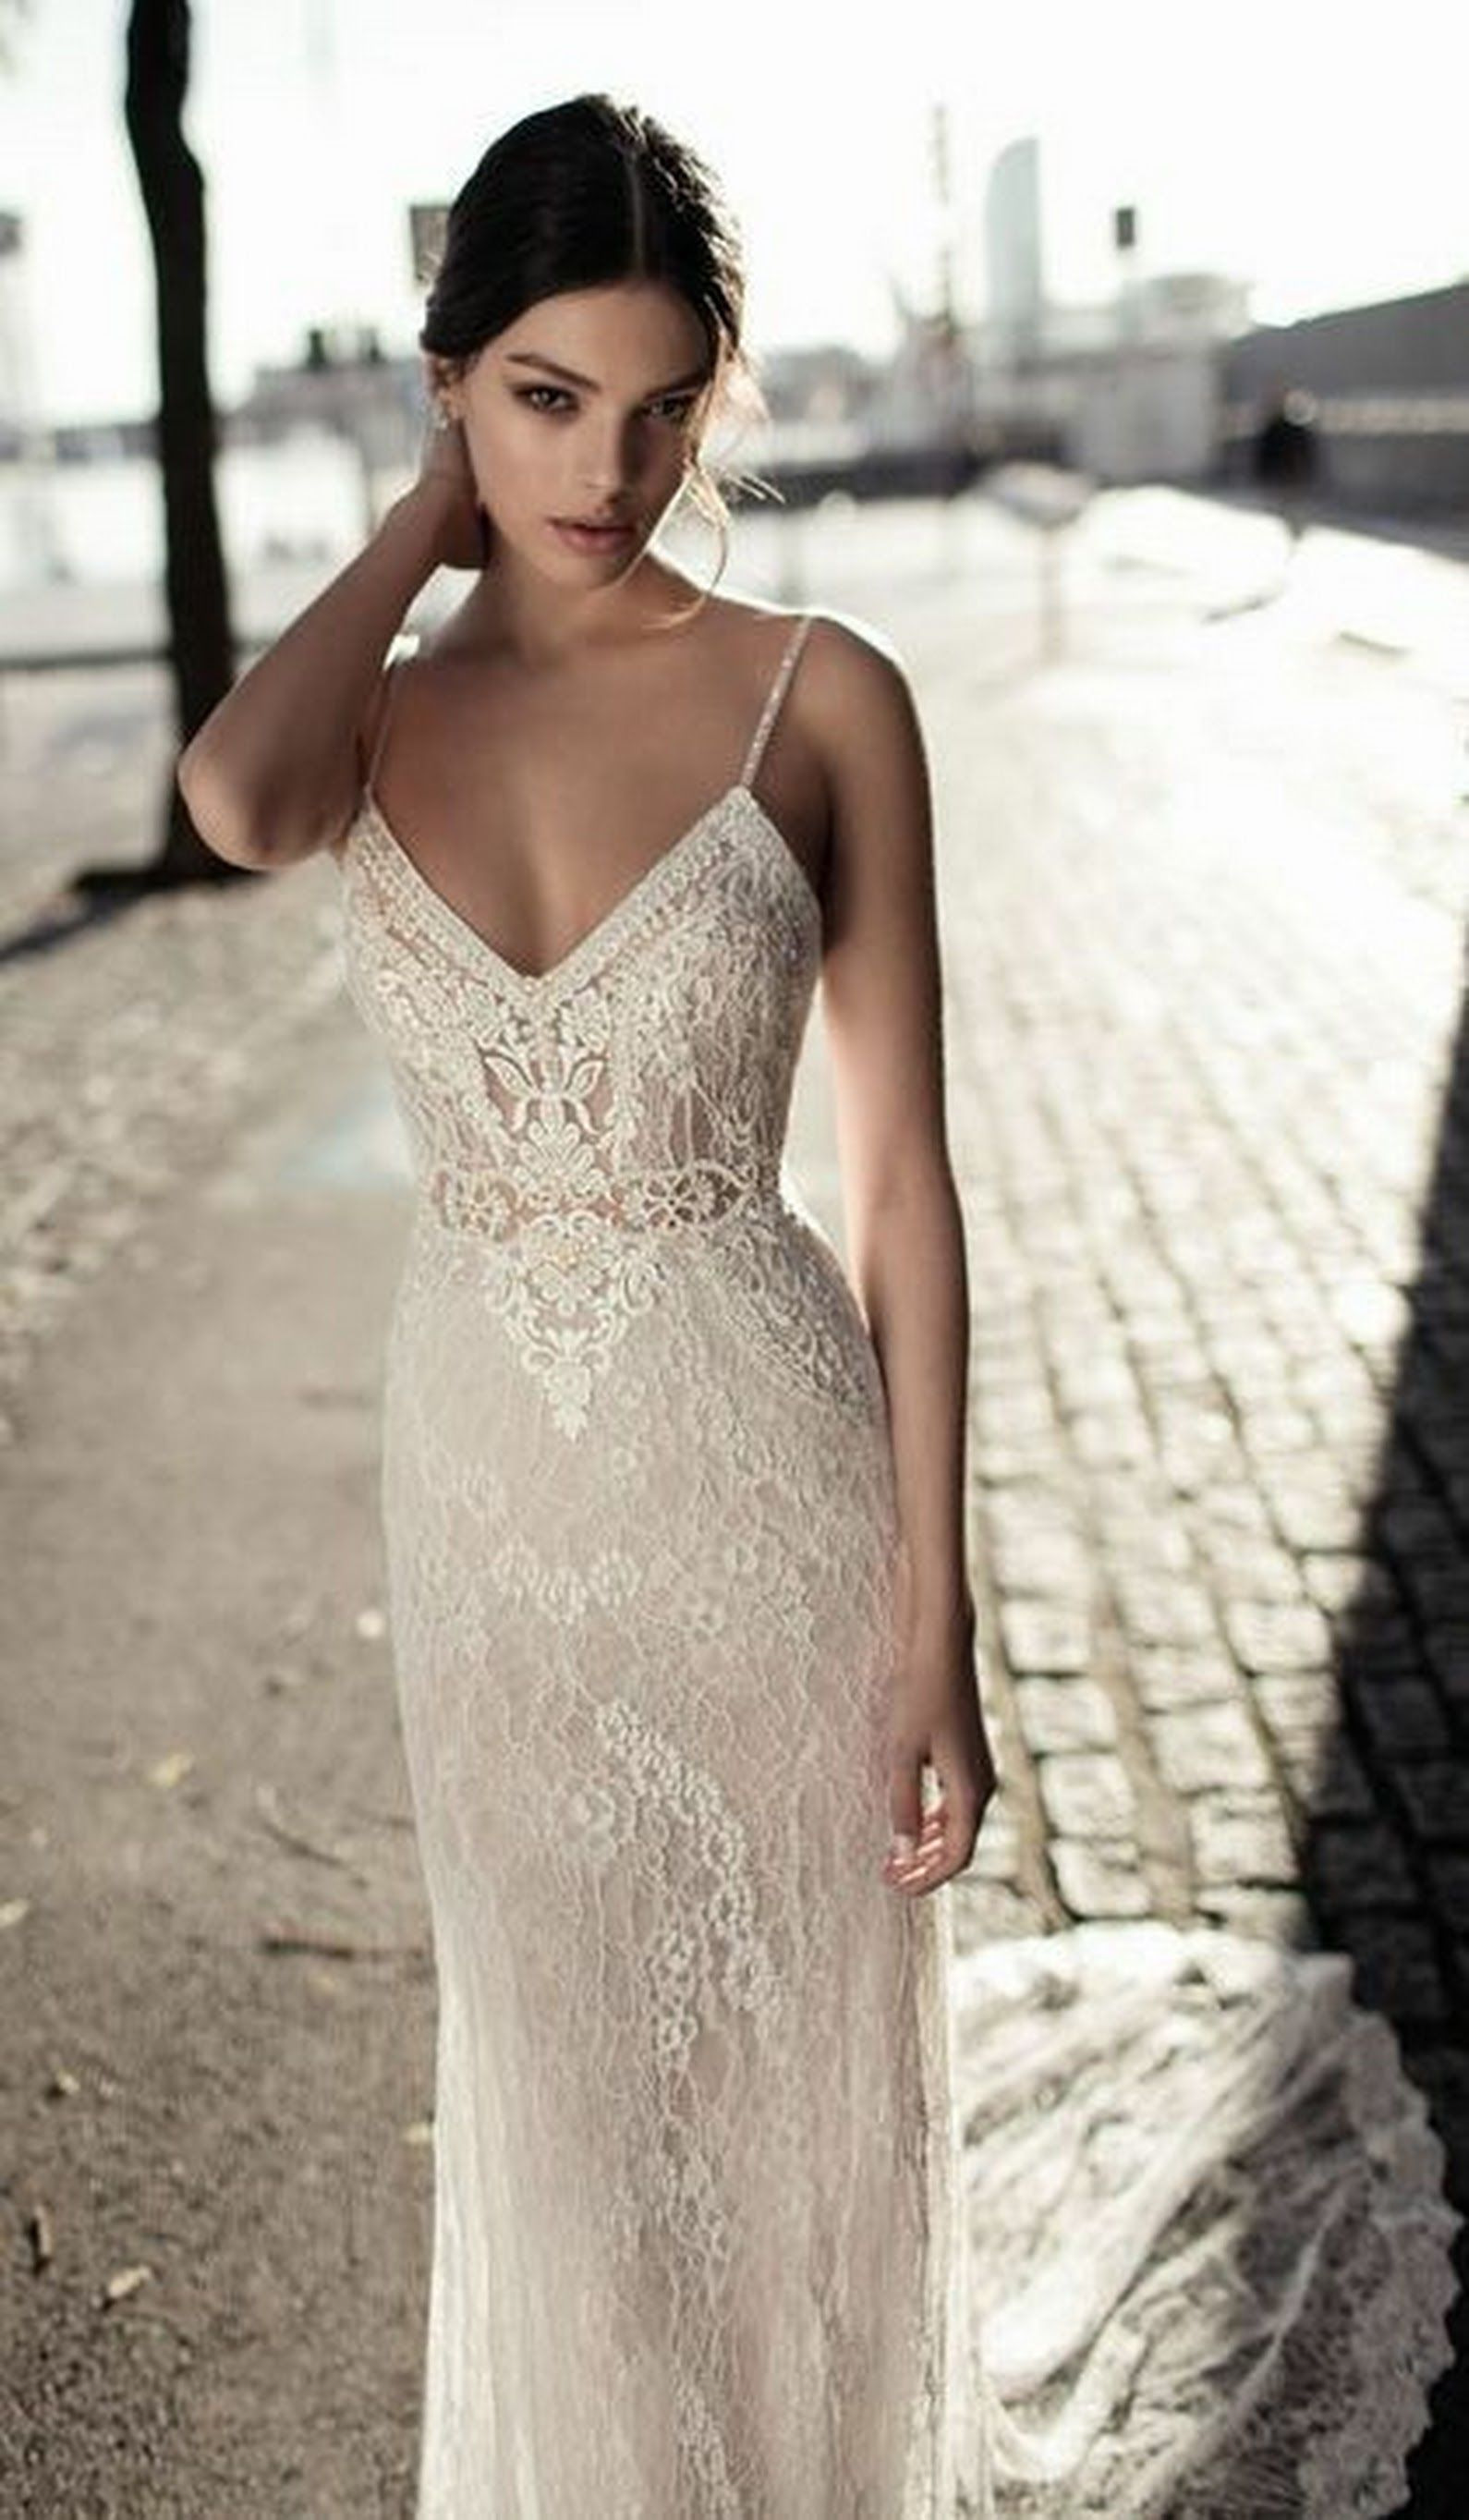 Lace bohemian wedding dress  Lovely lace  All things wedding  Pinterest  Wedding dresses